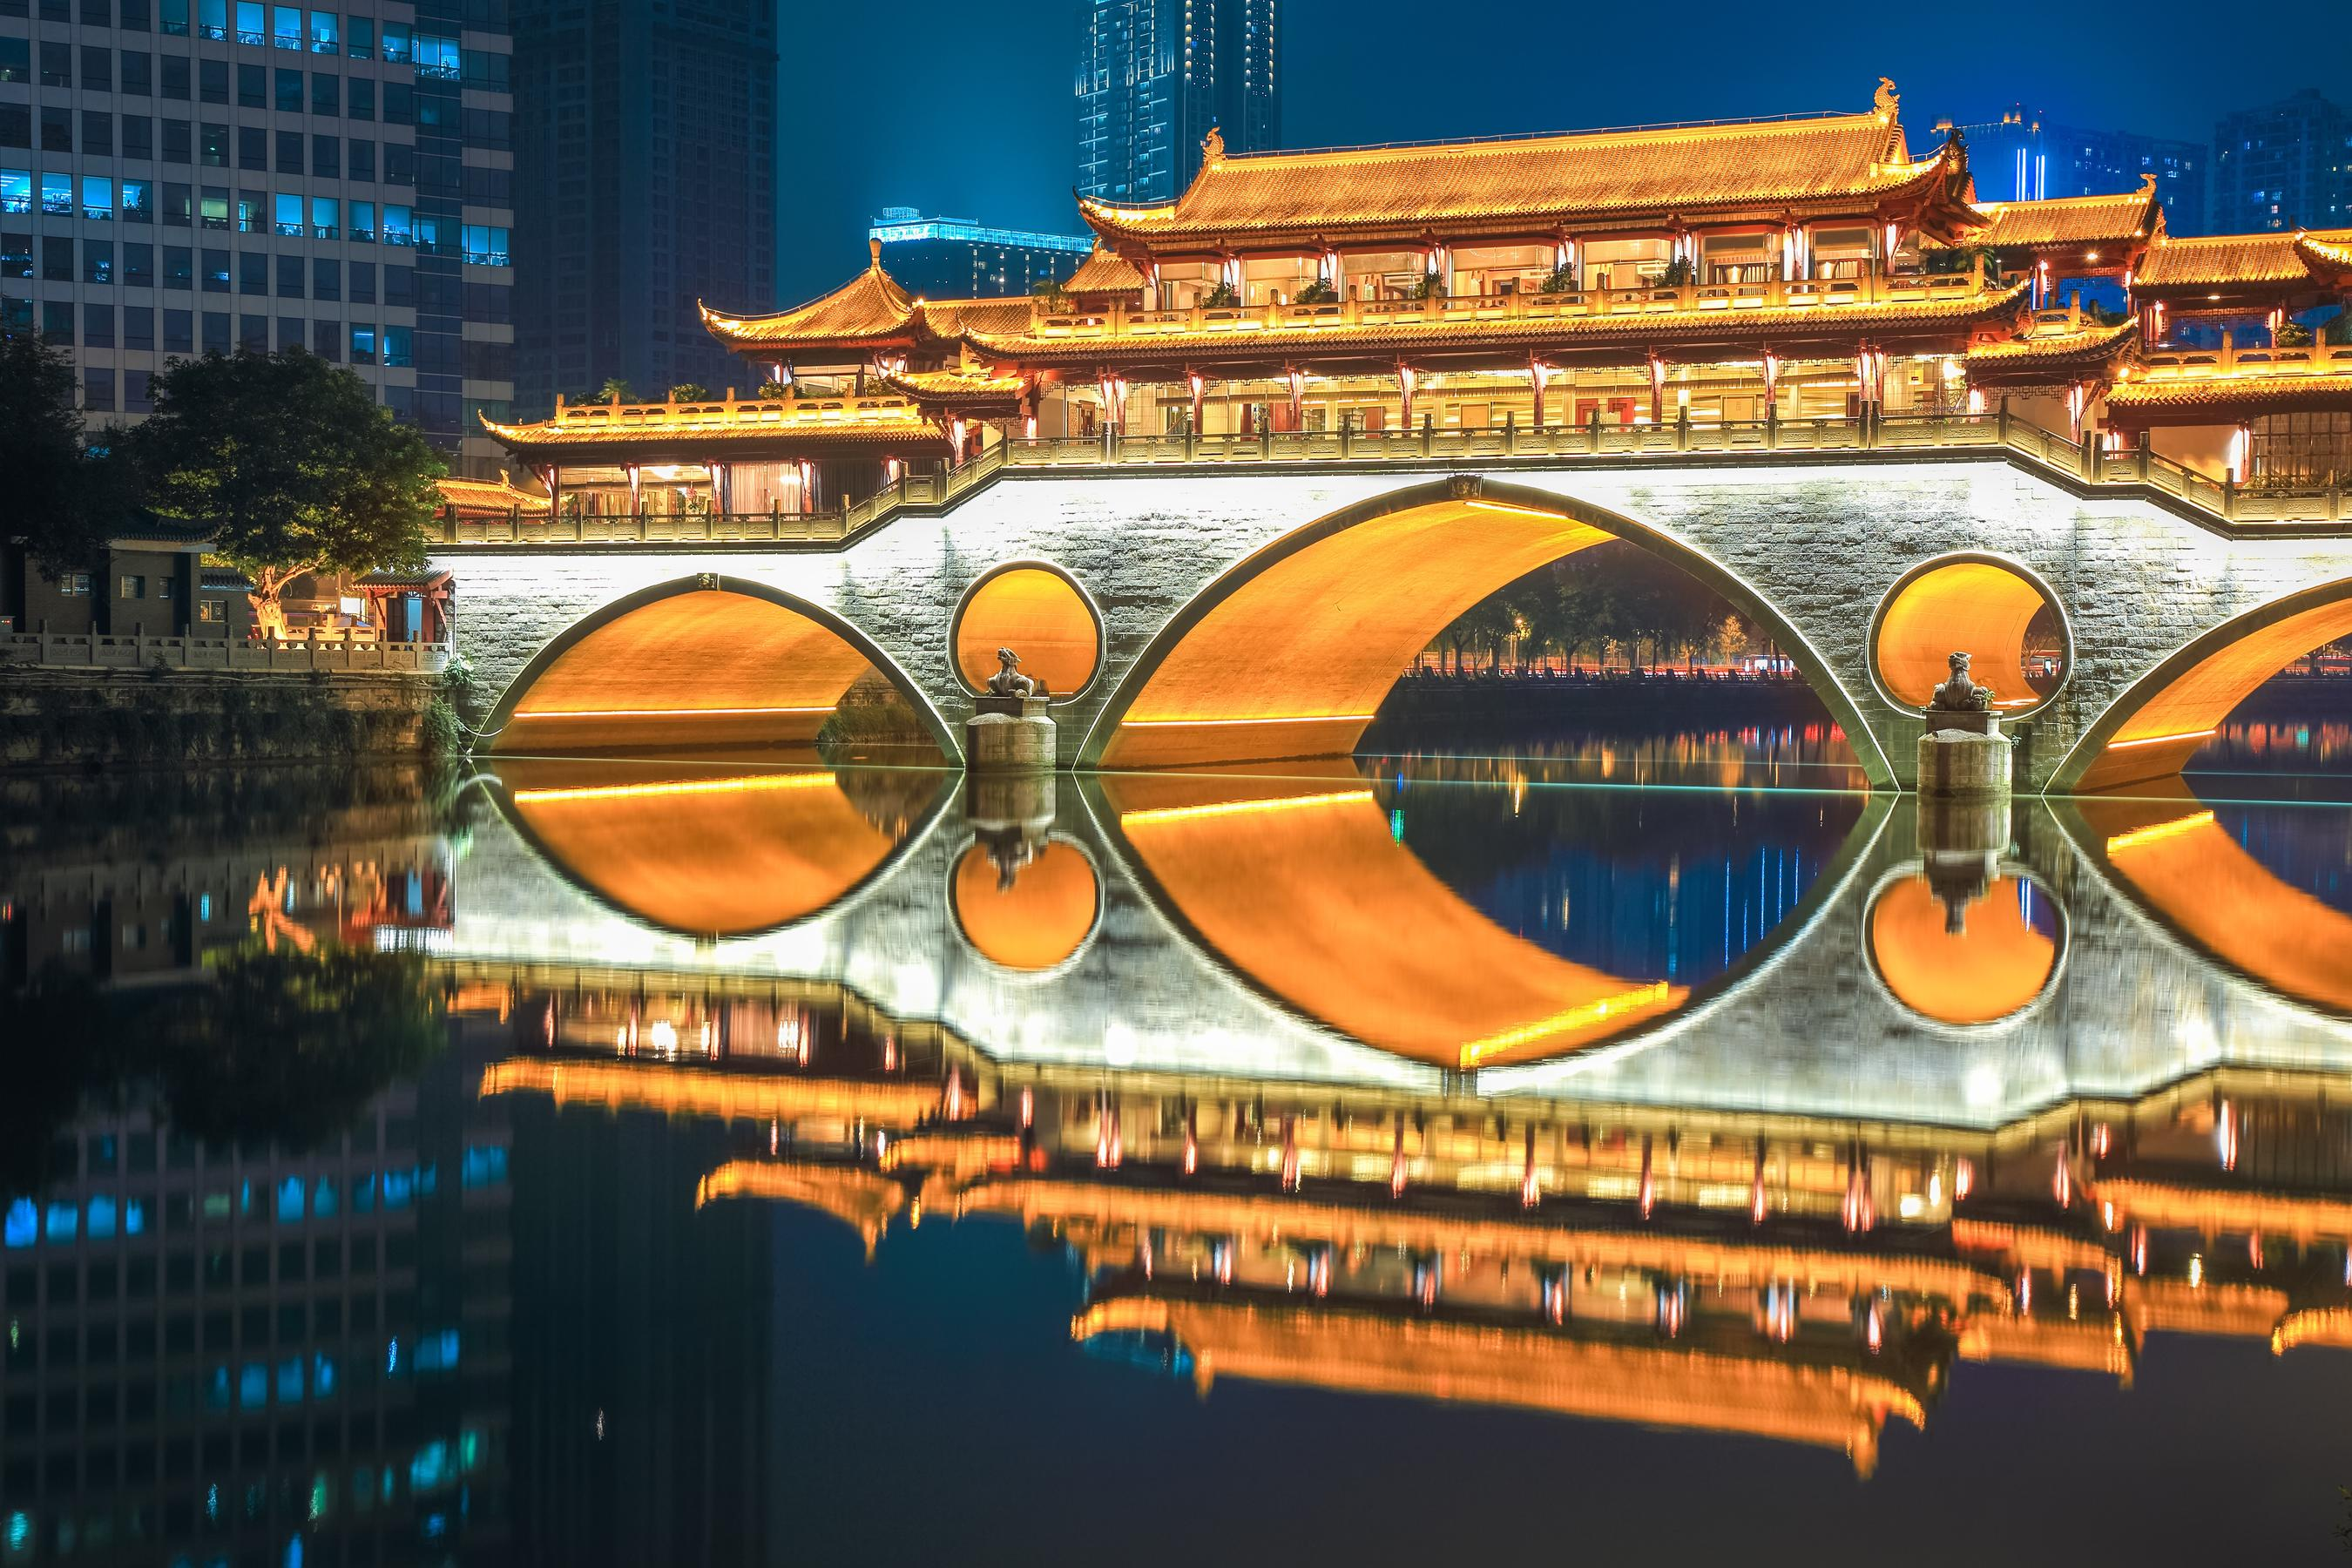 Hotels in Sichuan and Chongqing   Fodor's Travel